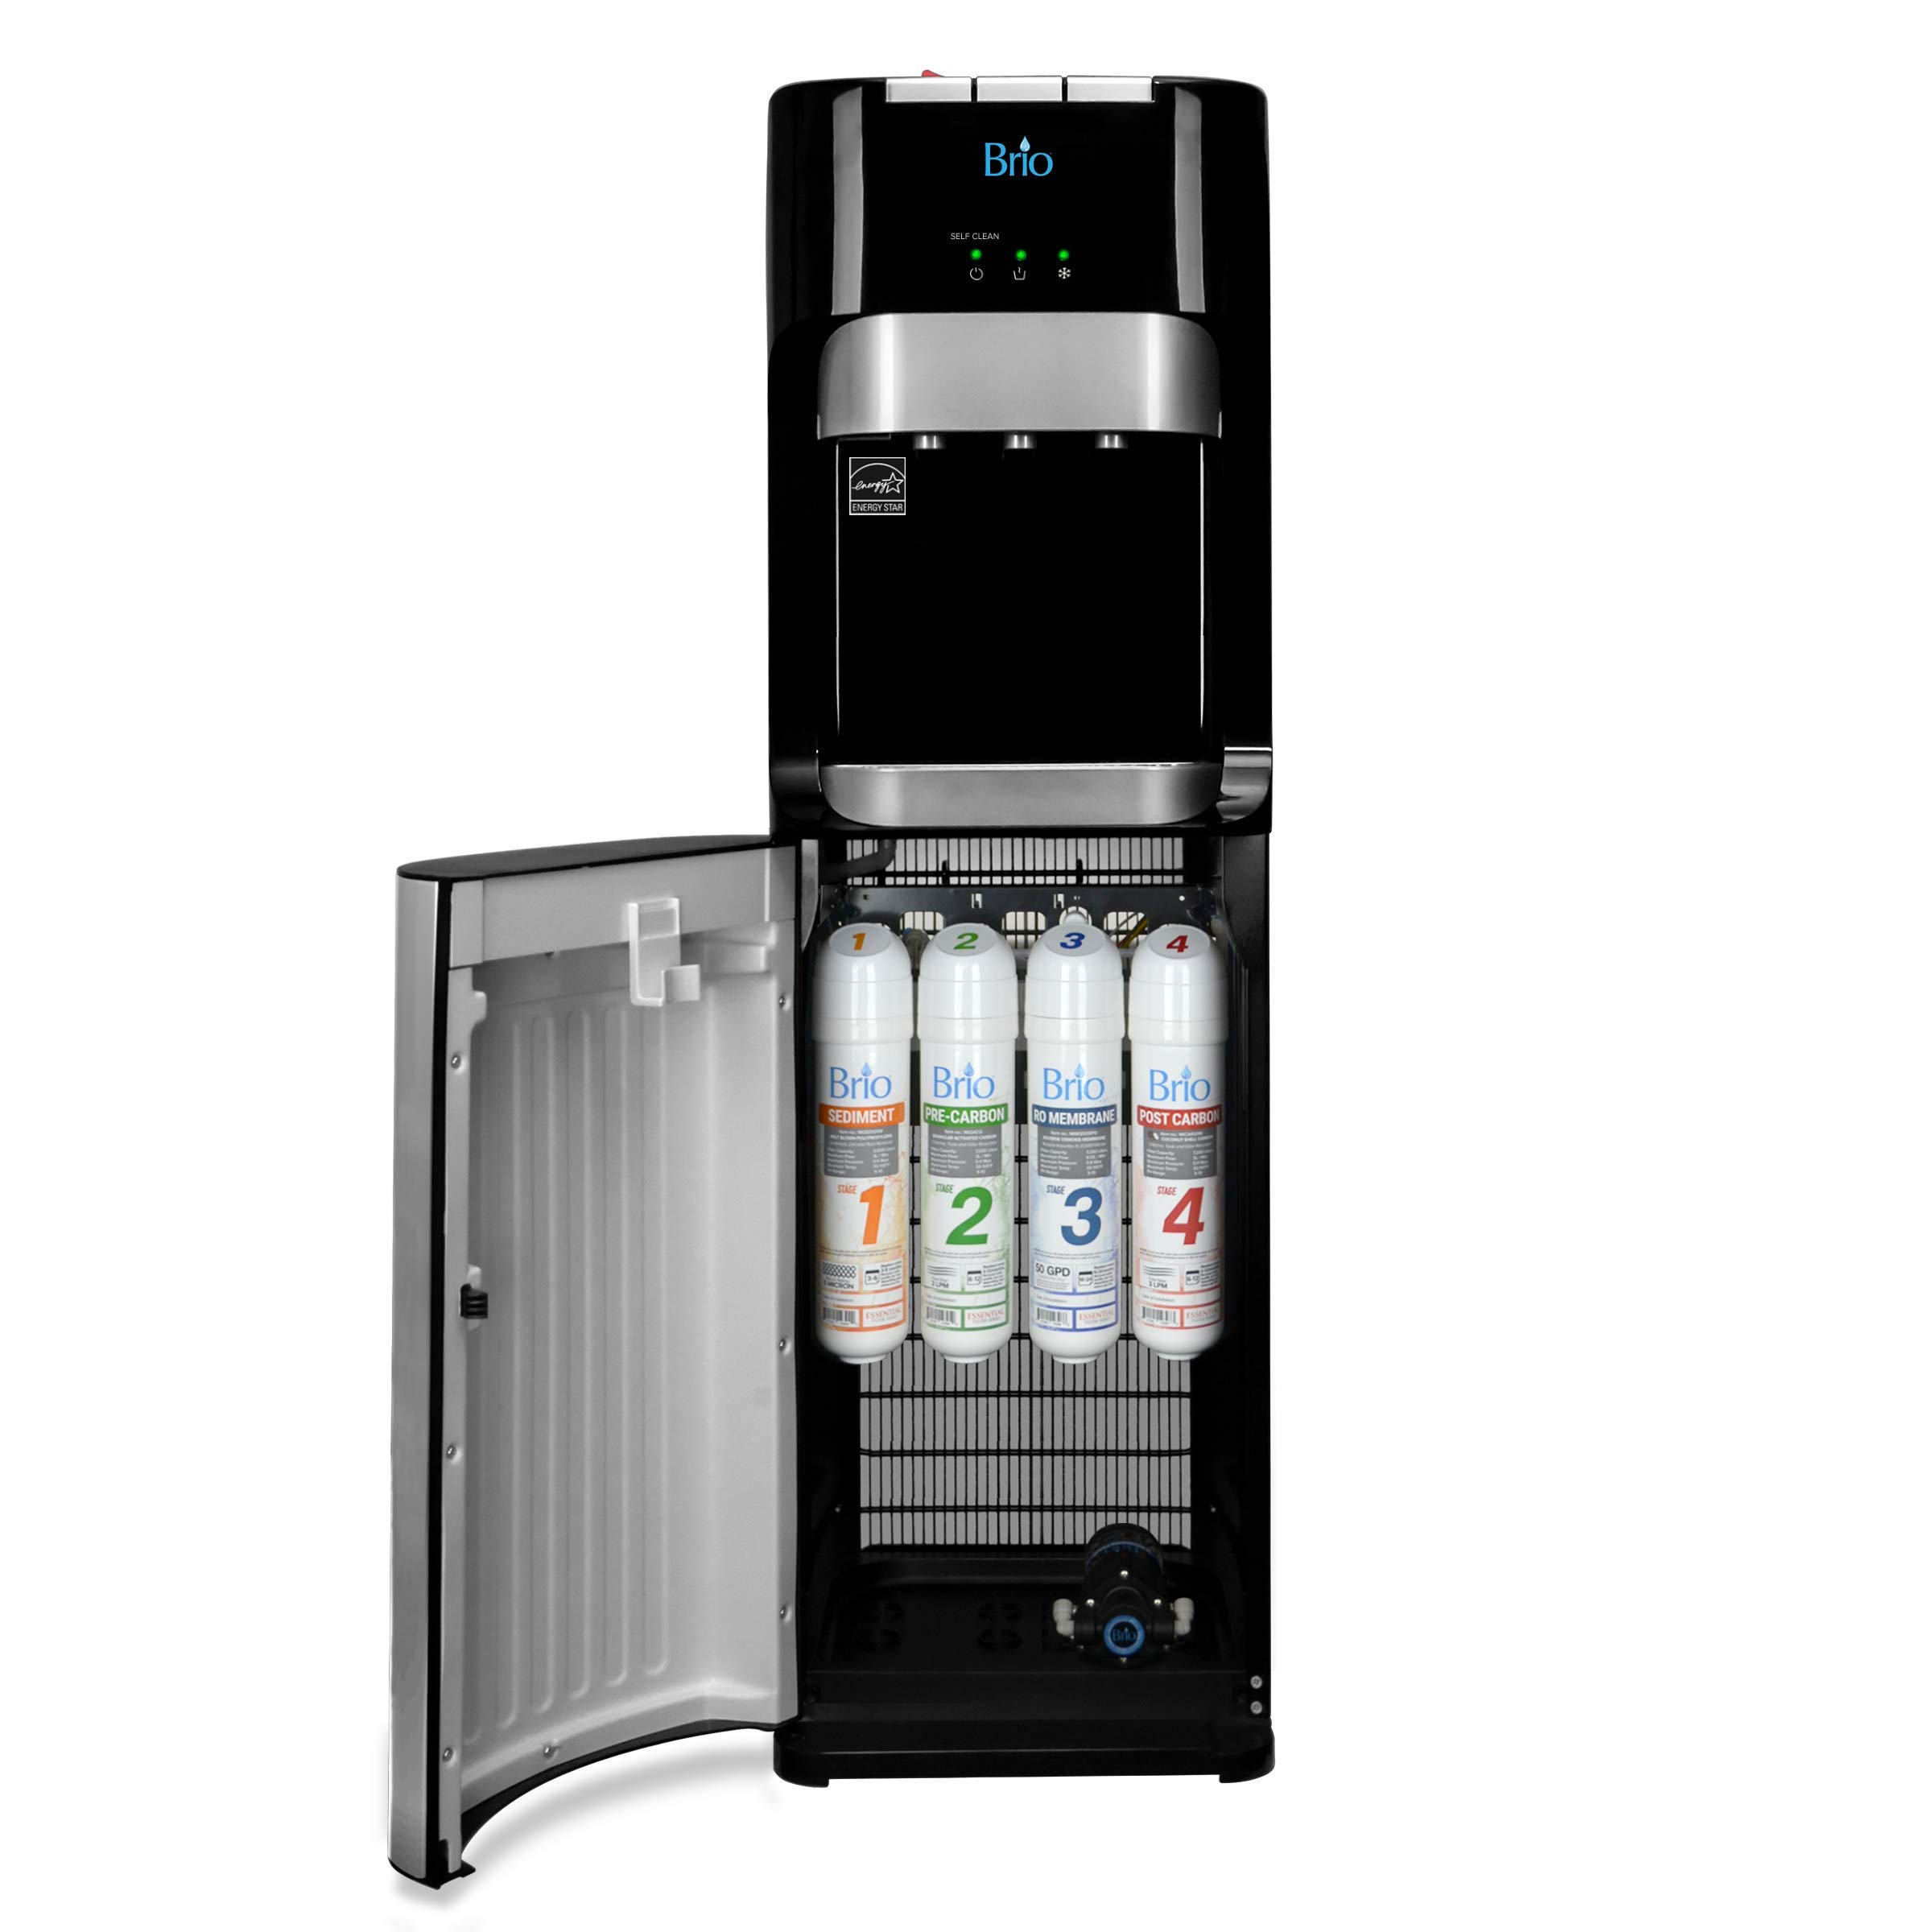 Brio Commercial Grade Bottleless Ultra Safe Reverse Osmosis Drinking Water Filter Water Cooler Dispenser-3 Temperature Settings Hot, Cold & Room Water - UL/Energy Star Approved - Point of Use by Brio